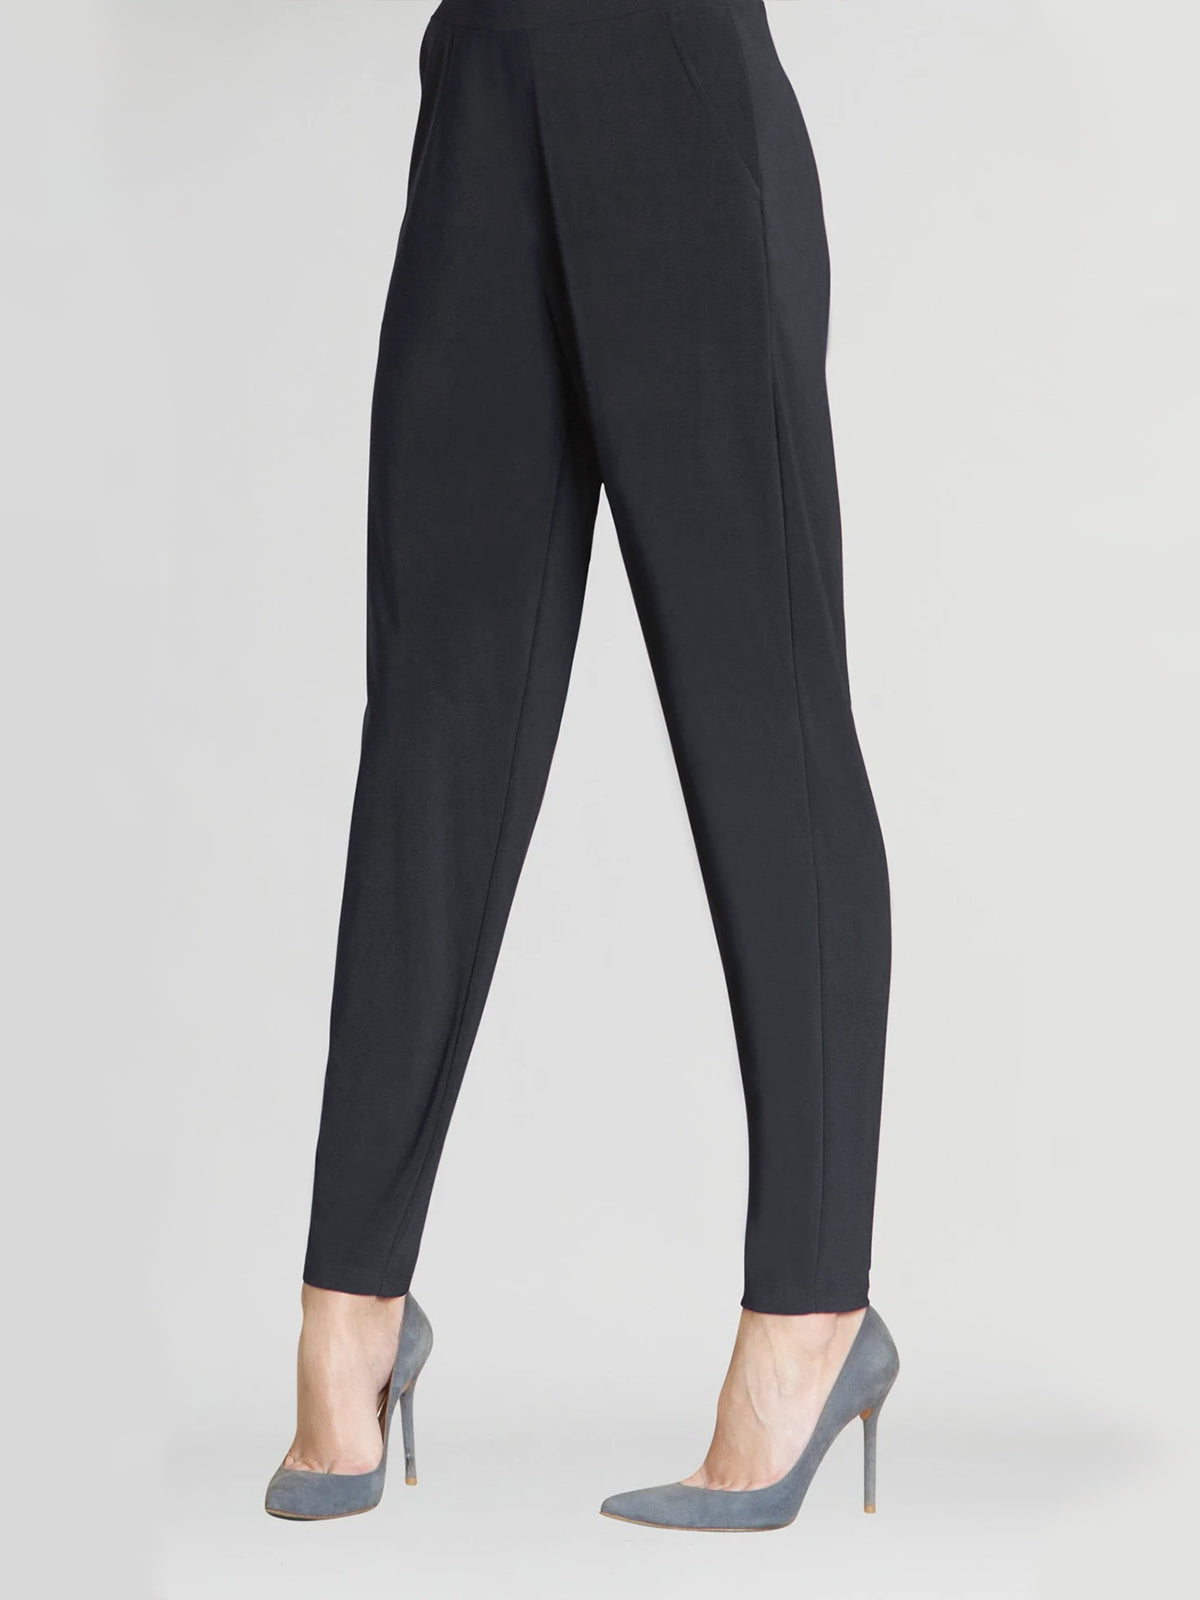 Clara Sunwoo Loose Narrow Hem Jogger Pant, Black - Statement Boutique